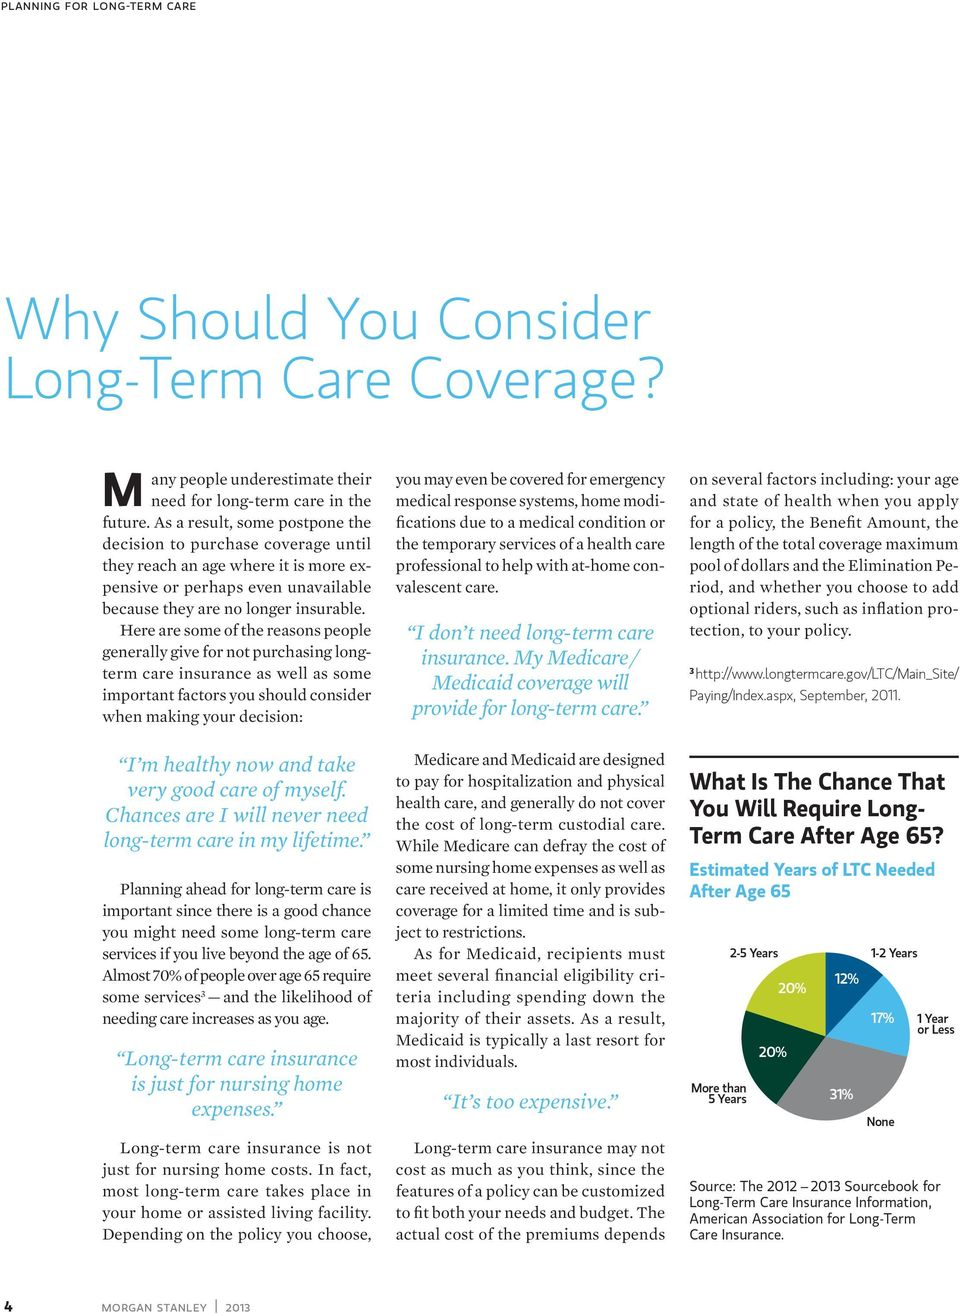 Here are some of the reasons people generally give for not purchasing longterm care insurance as well as some important factors you should consider when making your decision: I m healthy now and take